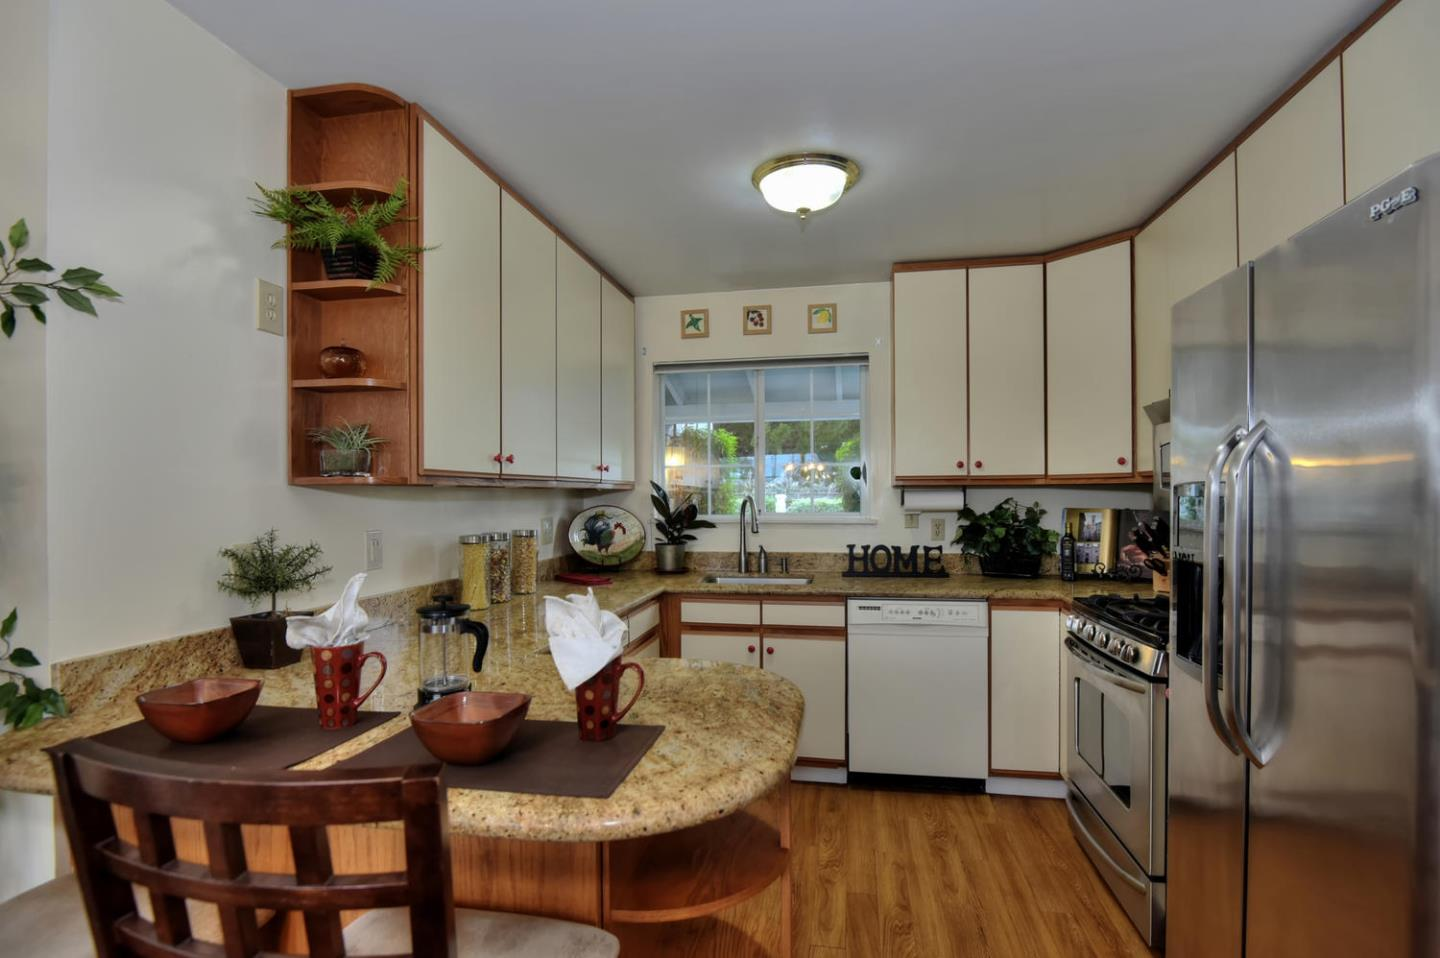 Additional photo for property listing at 2259 Blossom Valley Dr  SAN JOSE, CALIFORNIA 95124